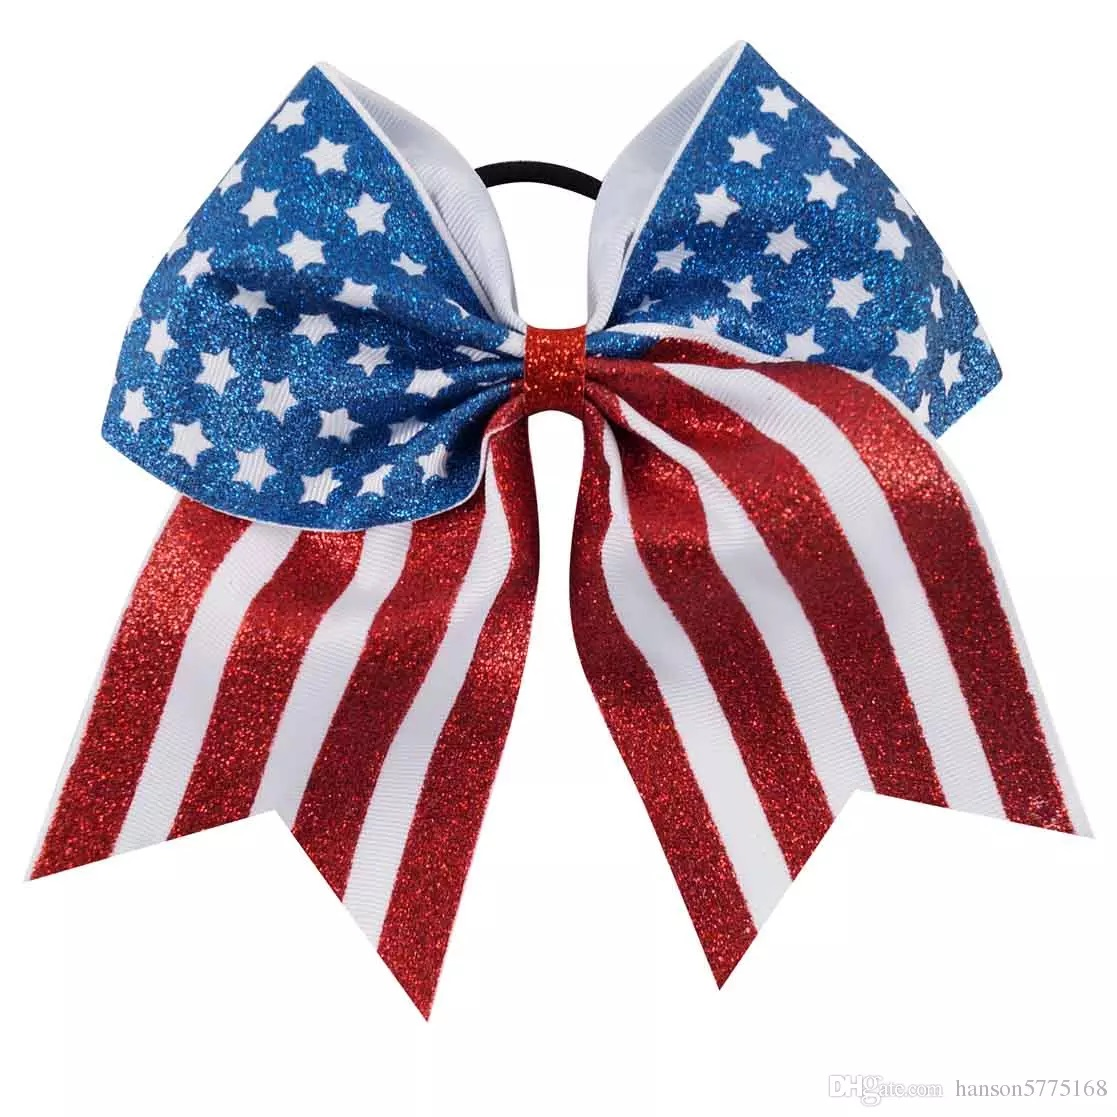 "New ""GLITTER AMERICAN FLAG"" Cheer Hair Bow Pony Tail 3"" Ribbon Cheerleading Practice Football Games Uniform Hairbow 4th of July Patriotic Stars & Stripes"